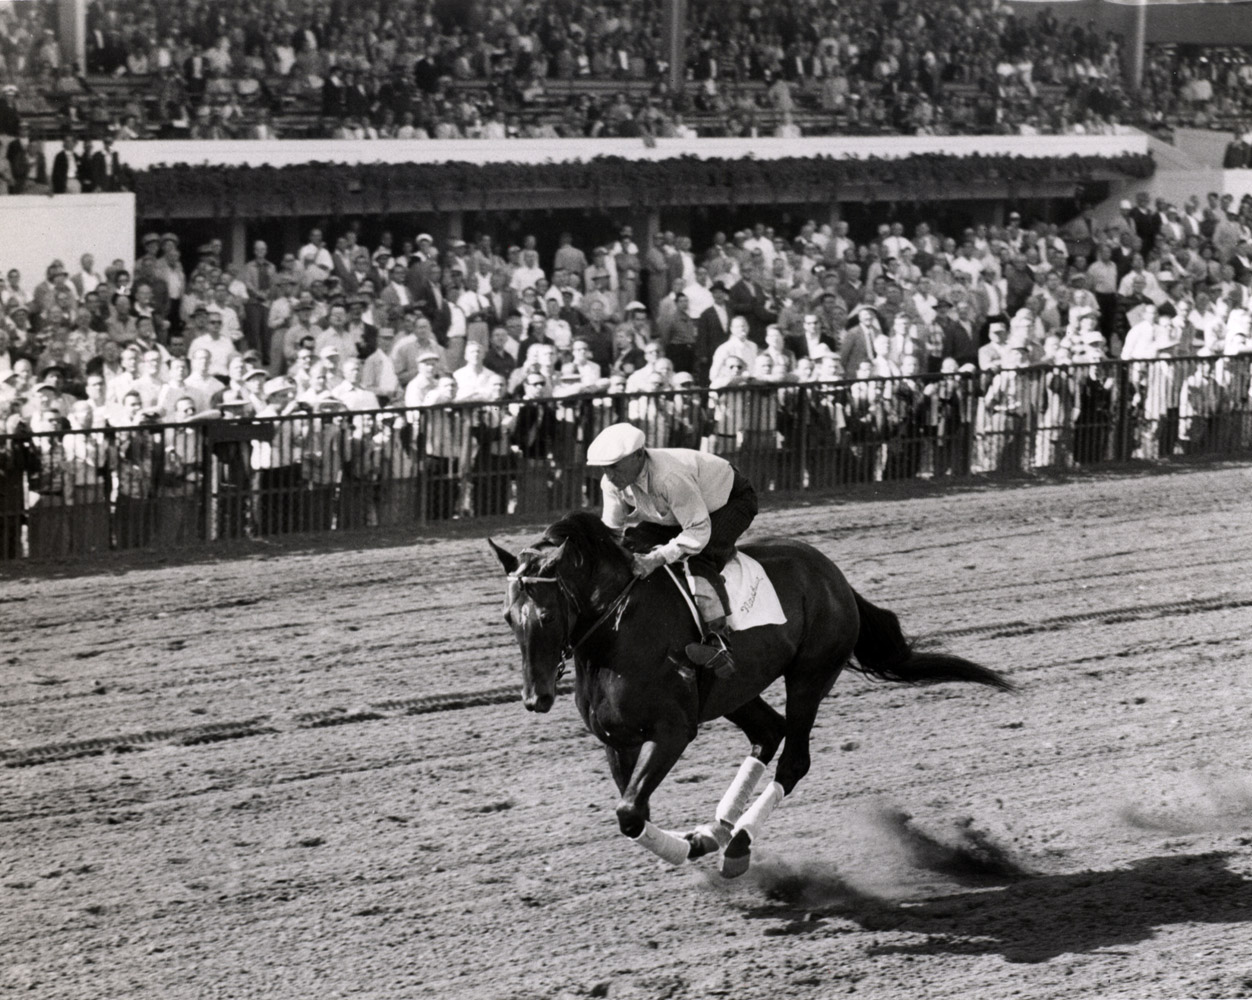 Nashua being exercised at Hialeah, March 1955 (Museum Collection)